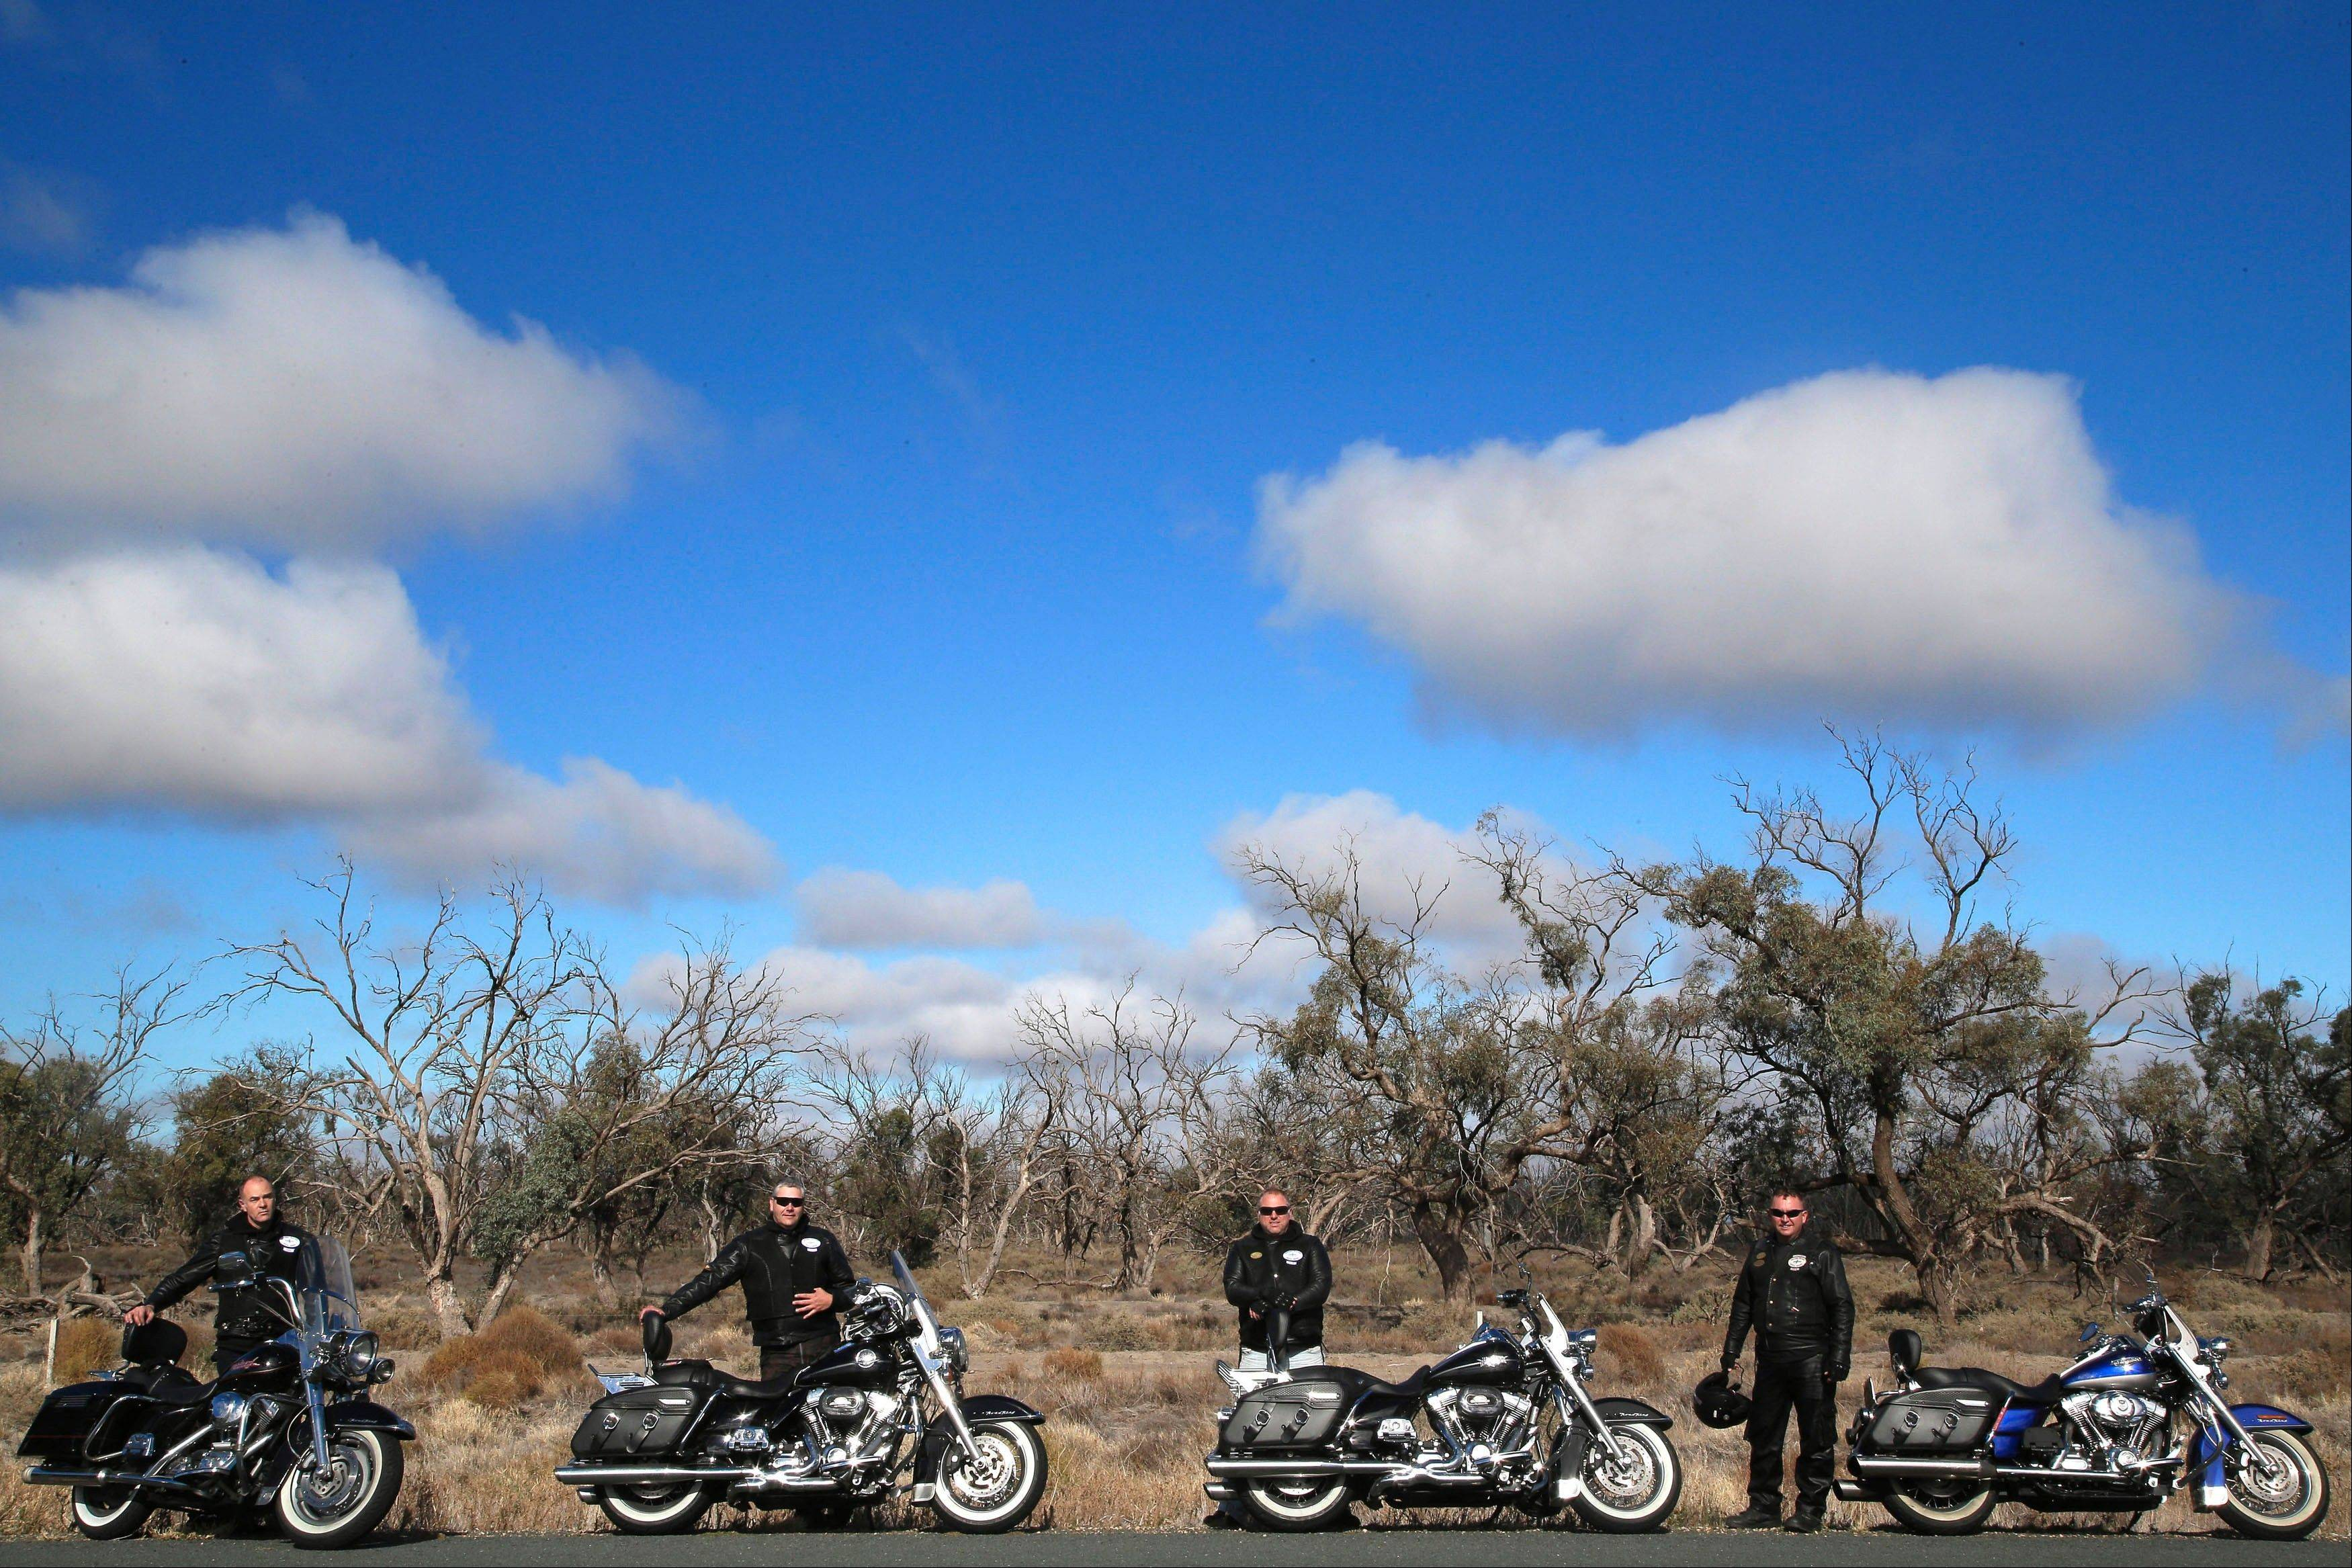 Motorcycle tourists, from left, John Roe, Rob Griffith, Glenn Nicholls and Stefan Hersee rest on the roadside near Wentworth, Australia.